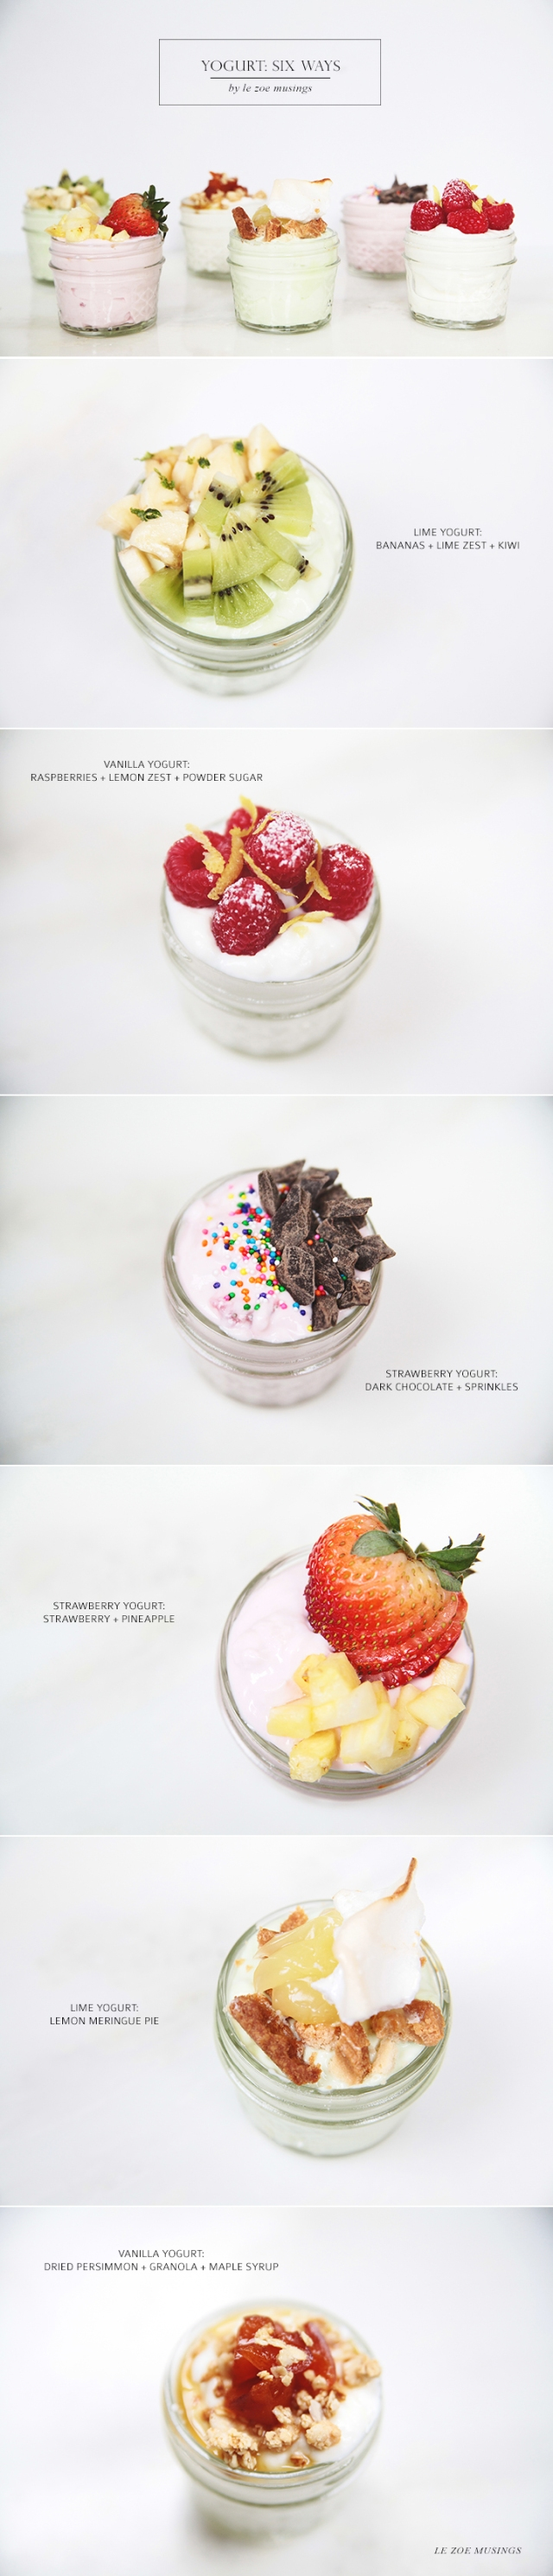 Yogurt 6 Ways_Le Zoe Musings